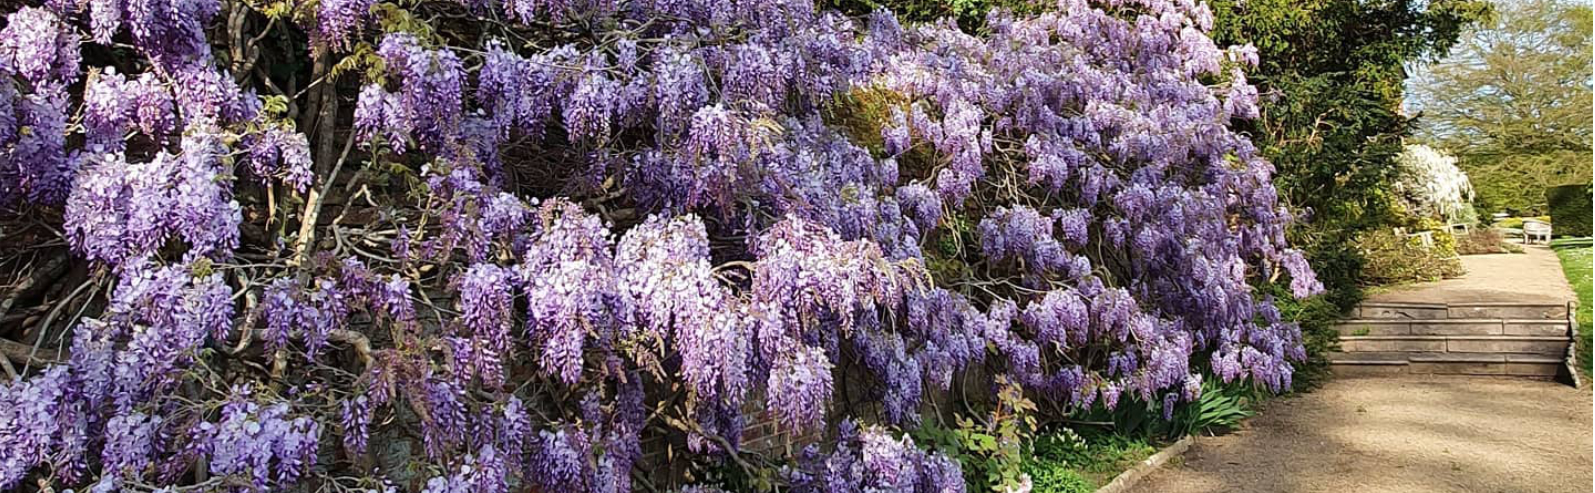 wisteria looking from formal garden